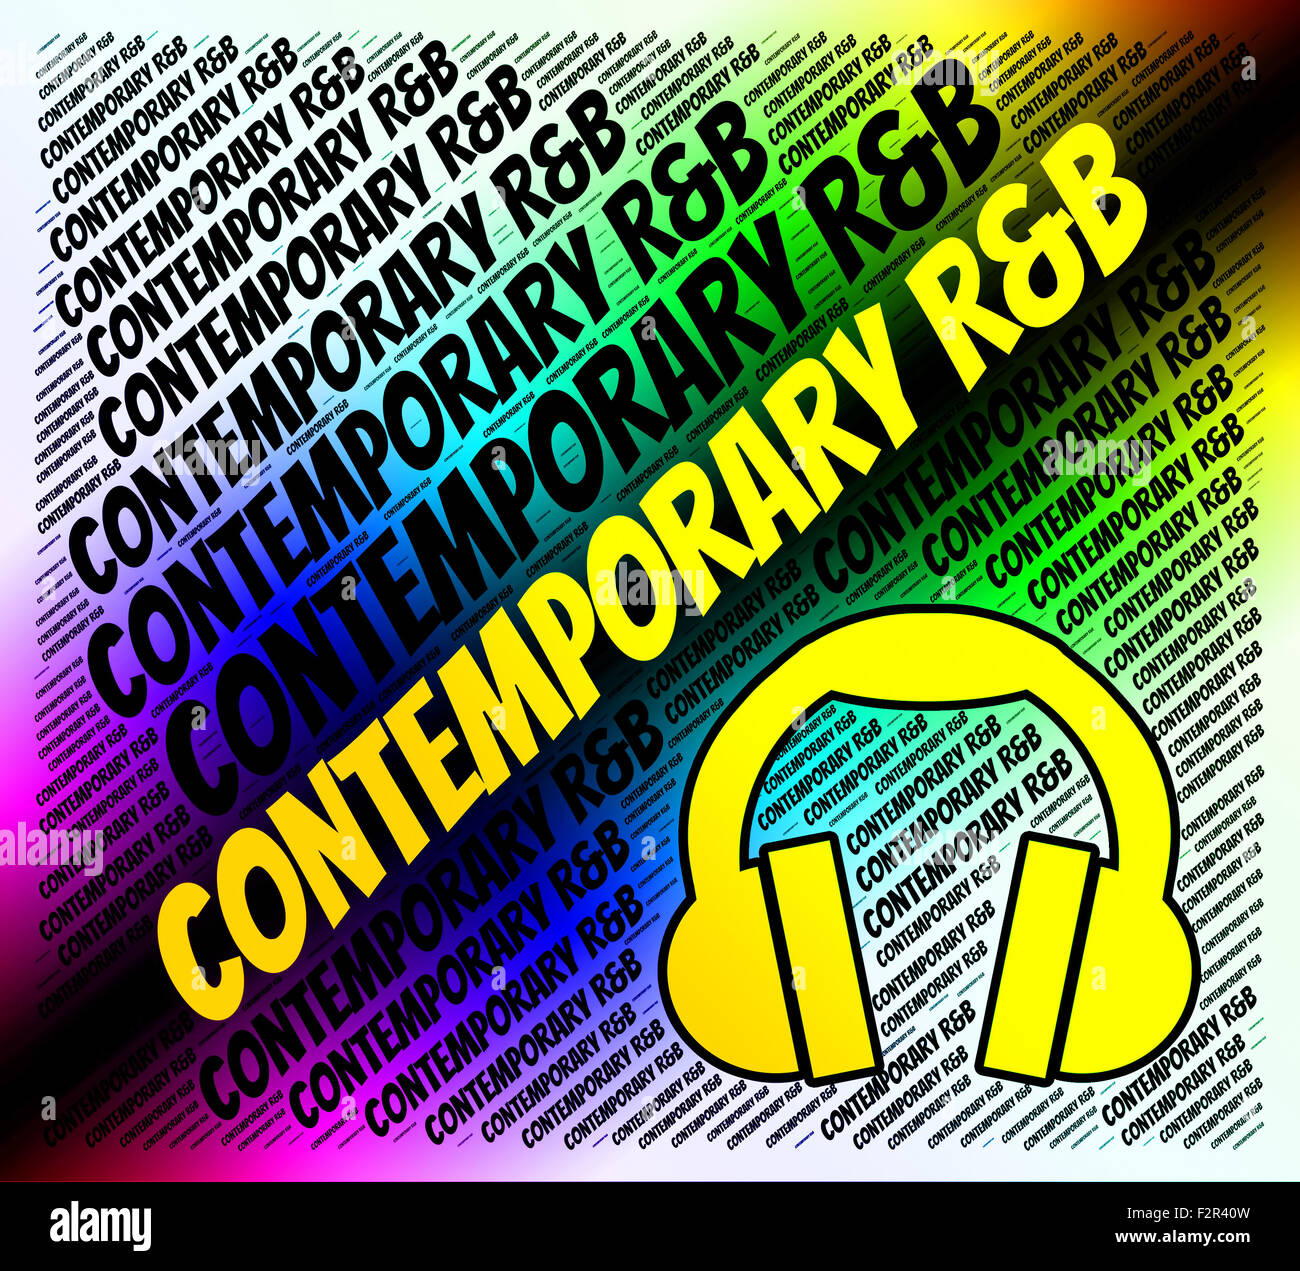 Contemporary Rb Indicating Rhythm And Blues And Modern Day